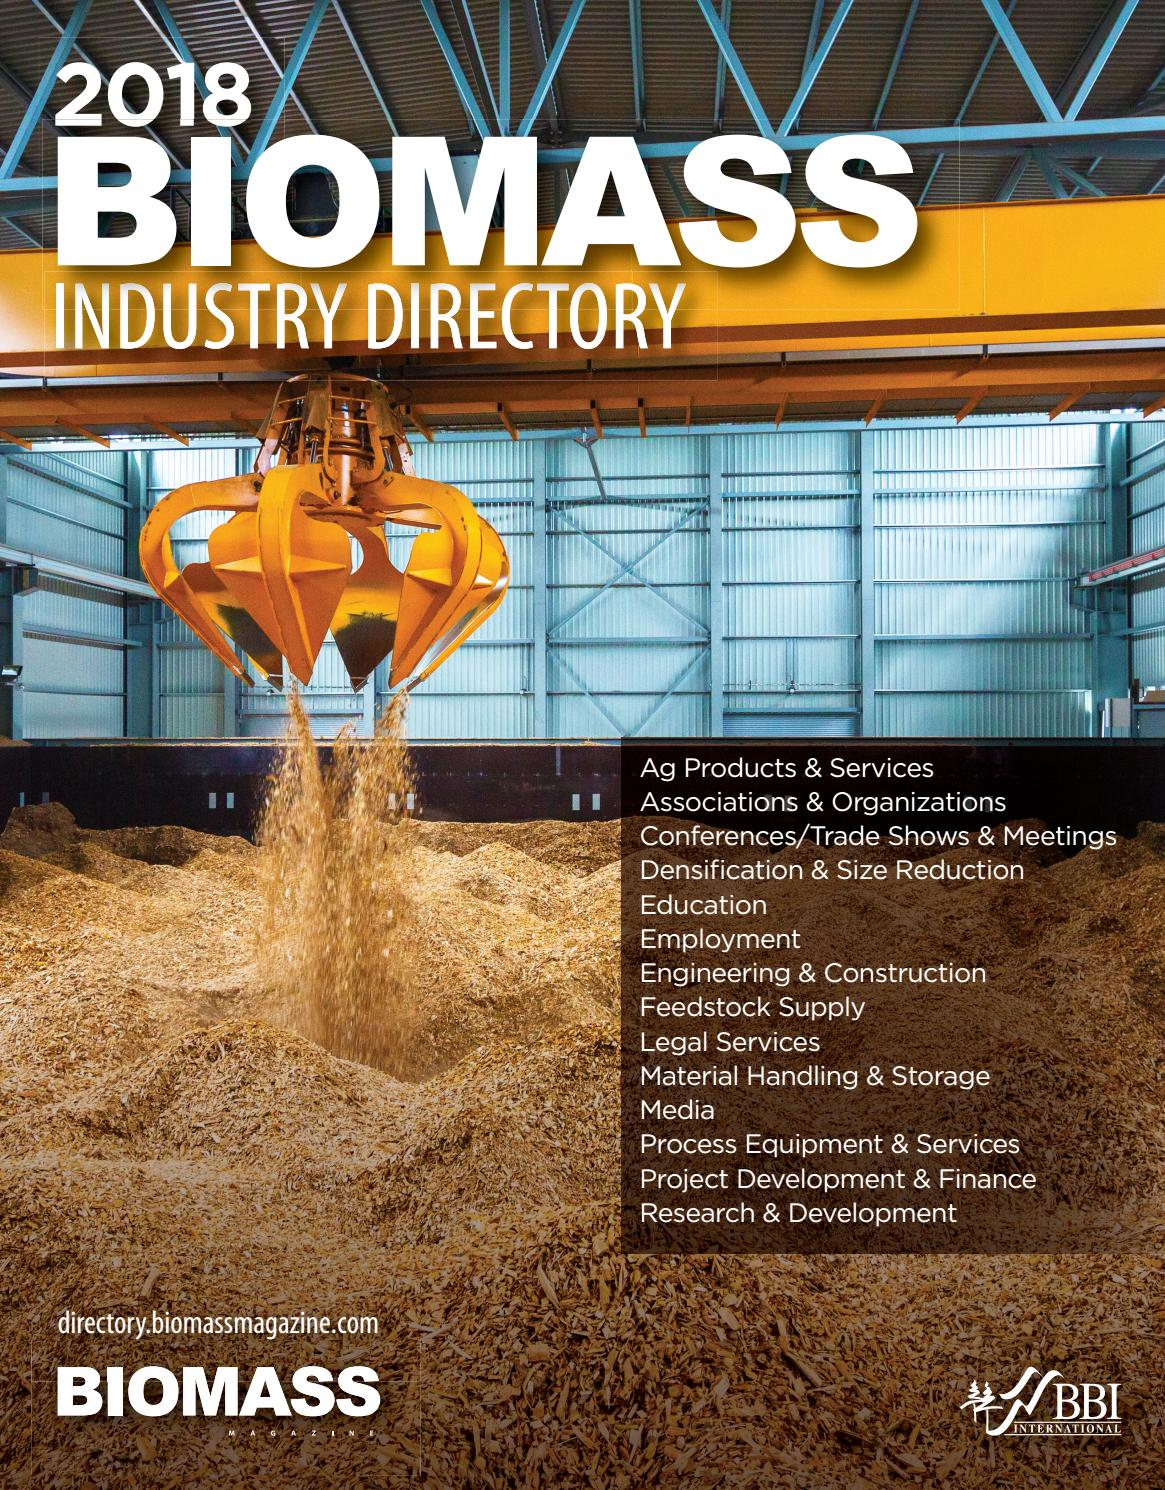 2018 Biomass Industry Directory by BBI International - issuu